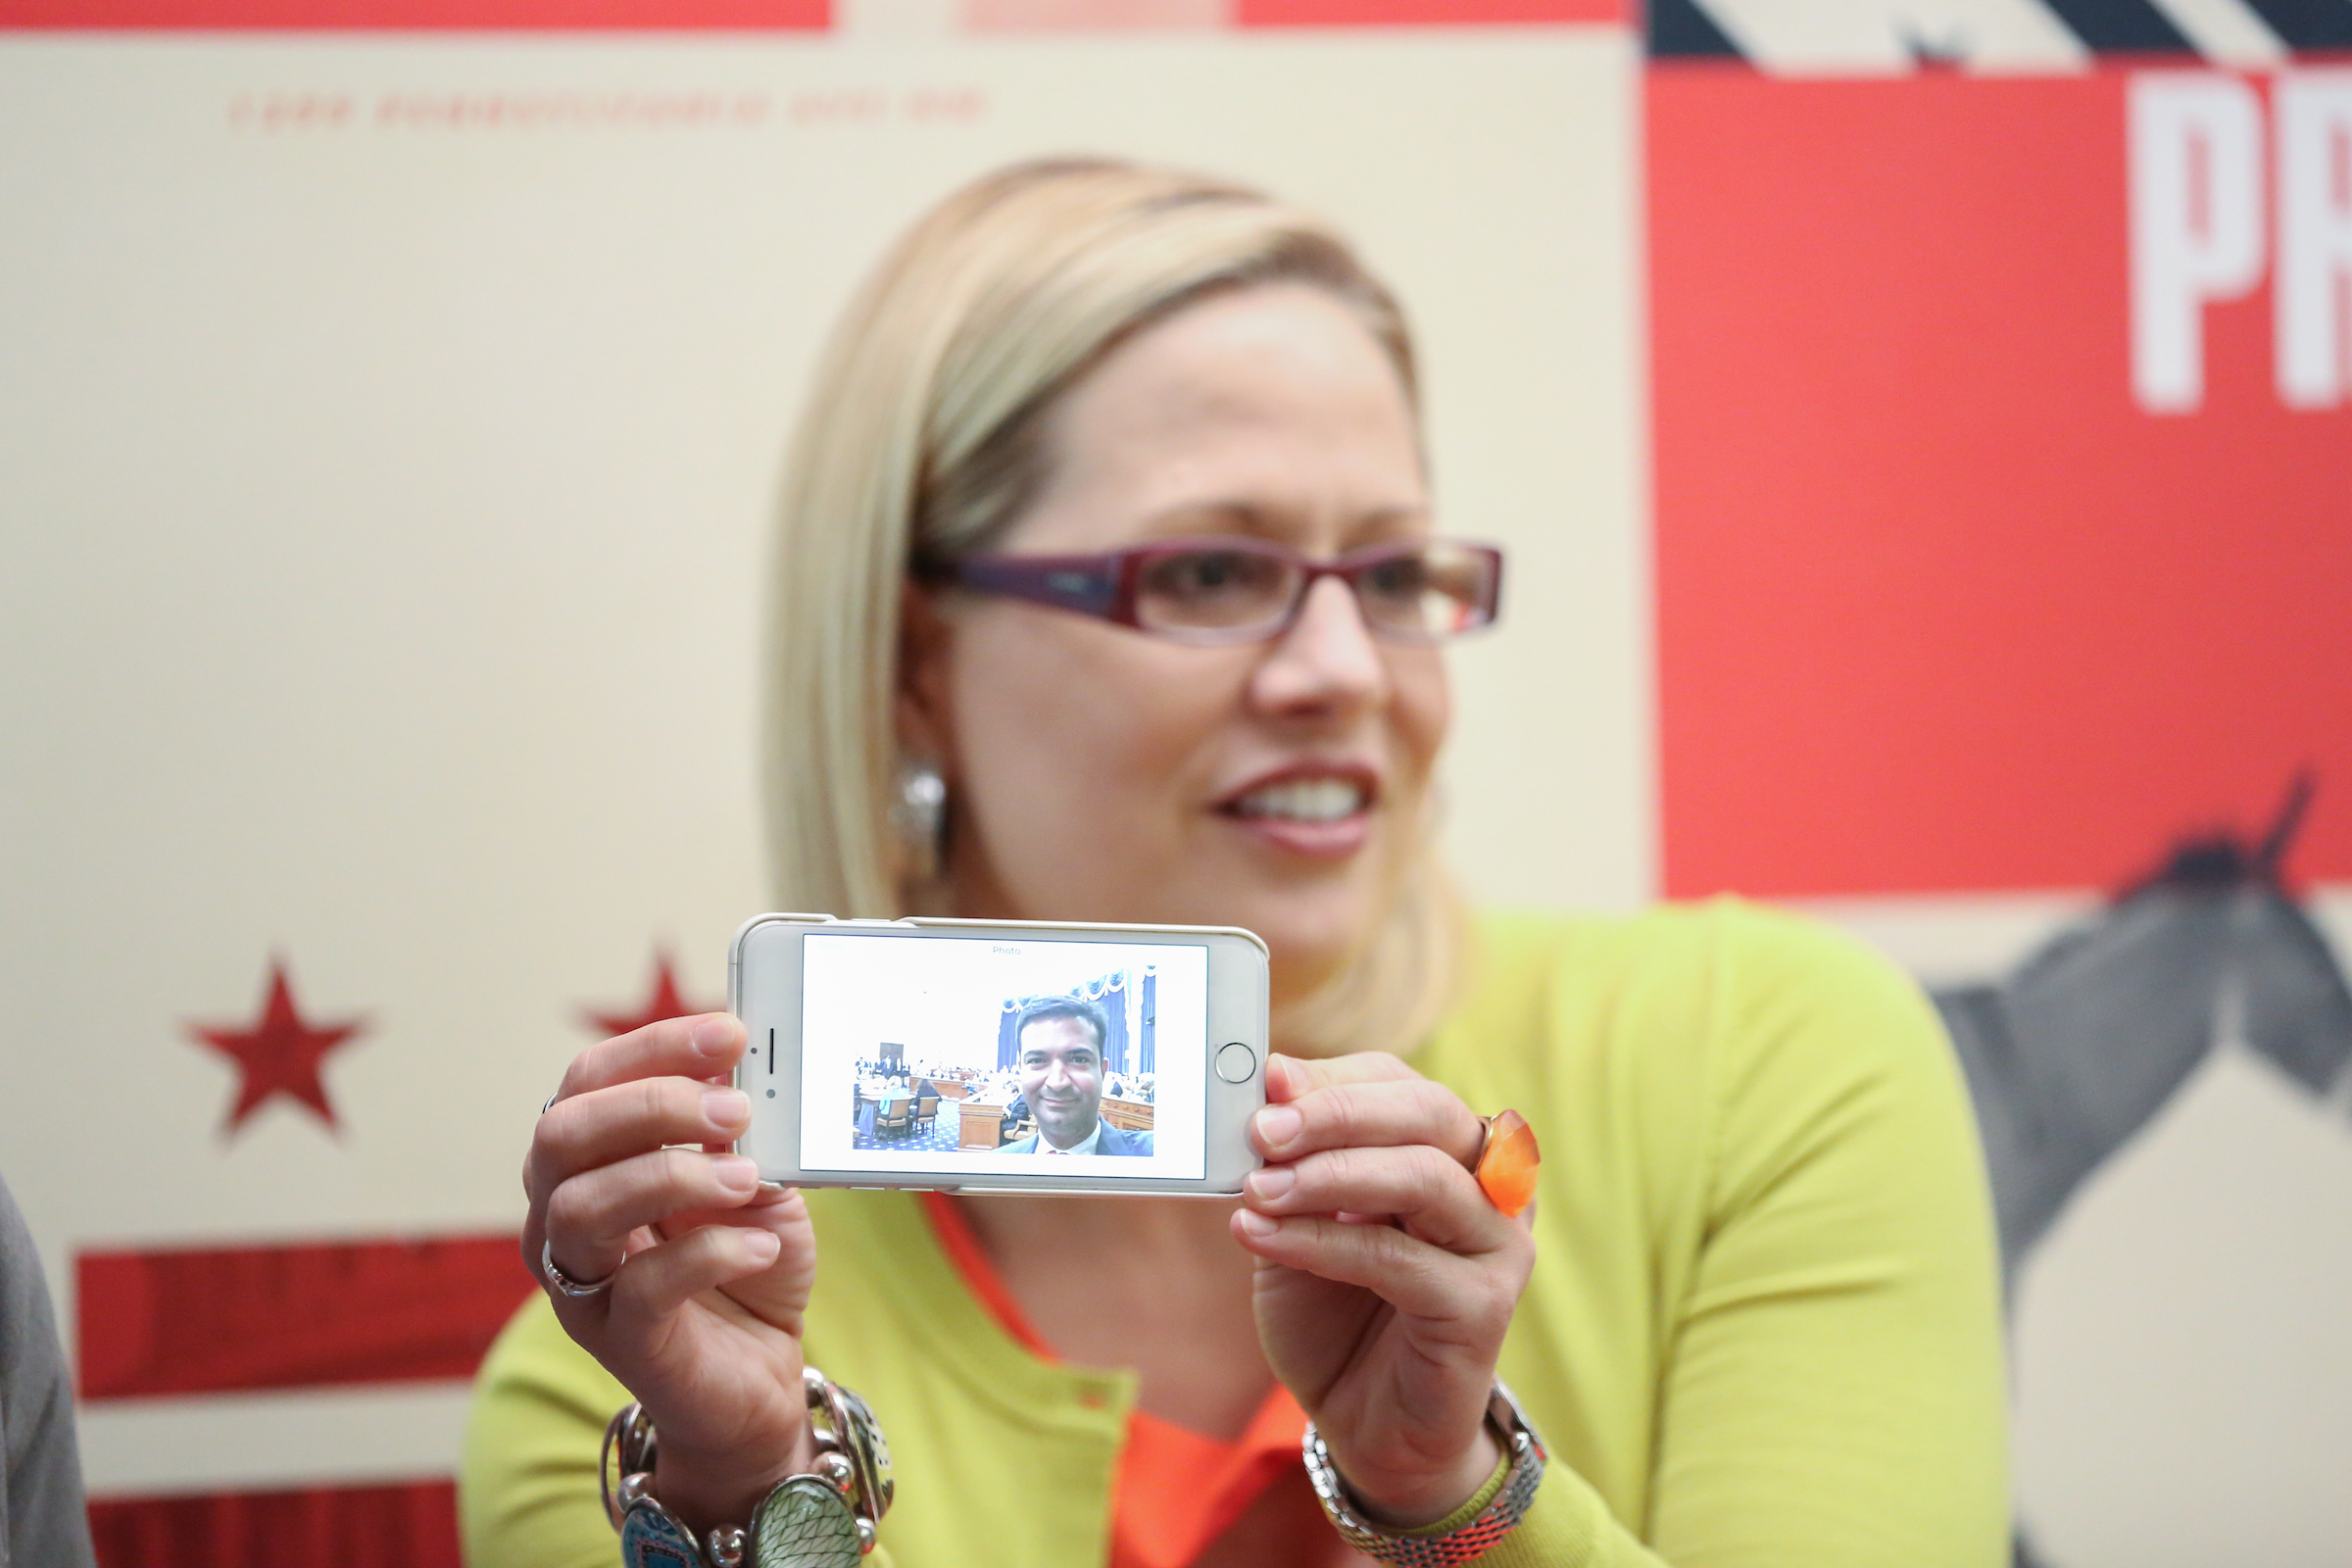 Rep. Sinema shares a photo texted to her by Rep. Curbelo, who was unable to attend the event due to a hearing in the House Ways and Means Committee. (Credit: Ralph Alswang Photography)